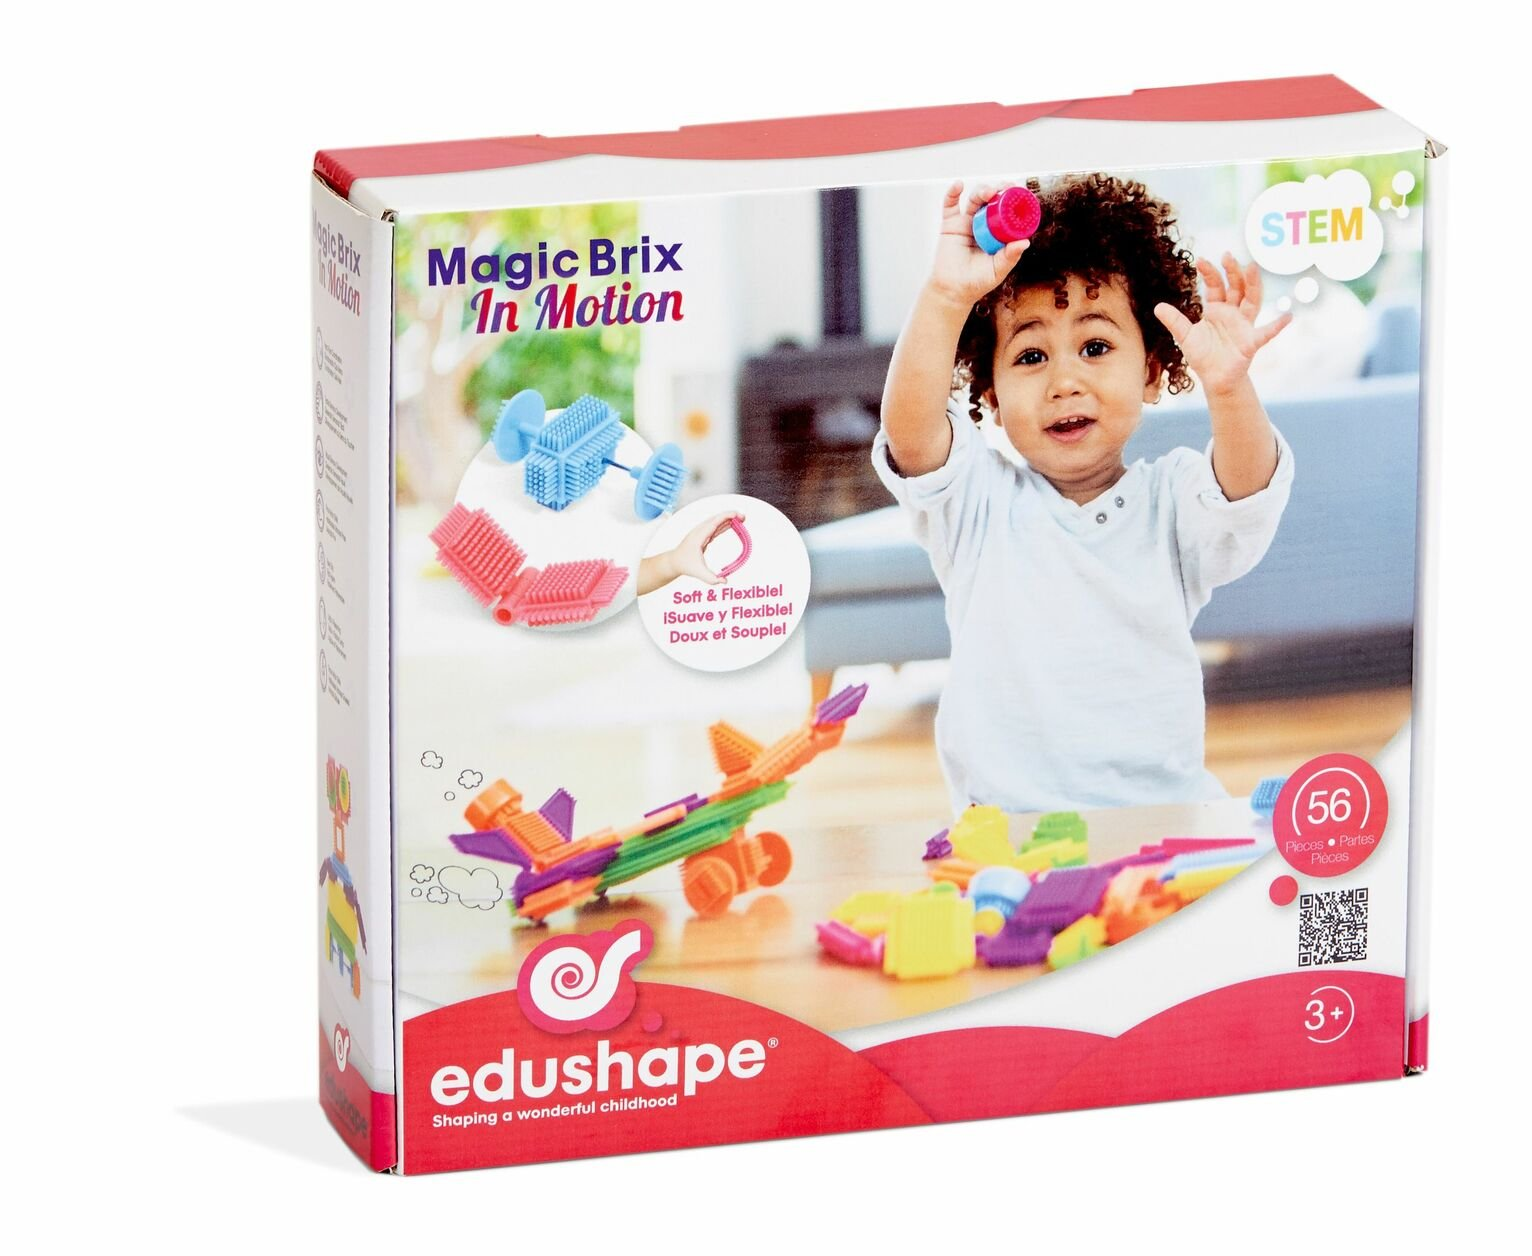 Edushape Magic Brix in Motion